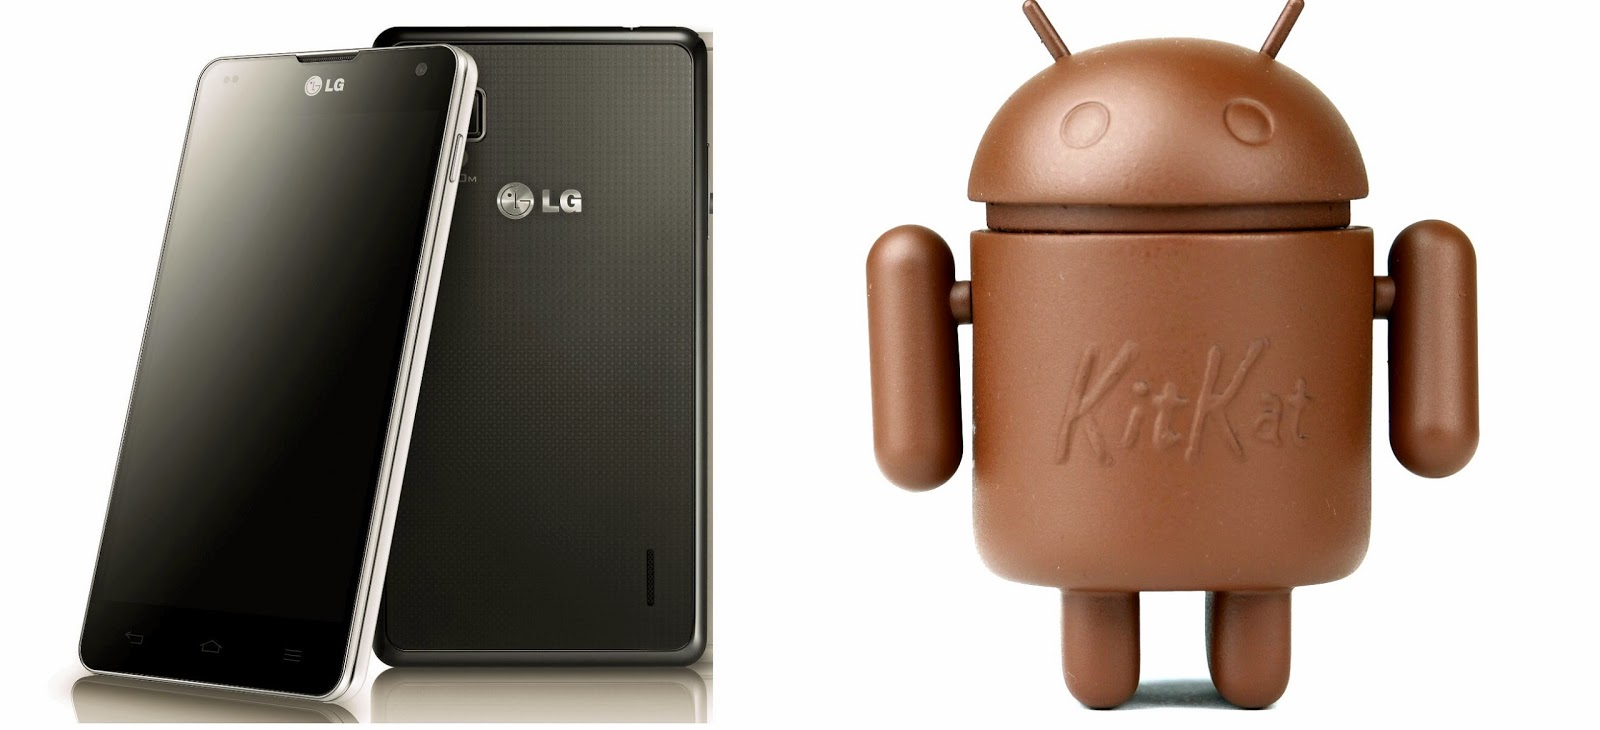 LG Optimus G to get the KitKat treatment in June, rumor says